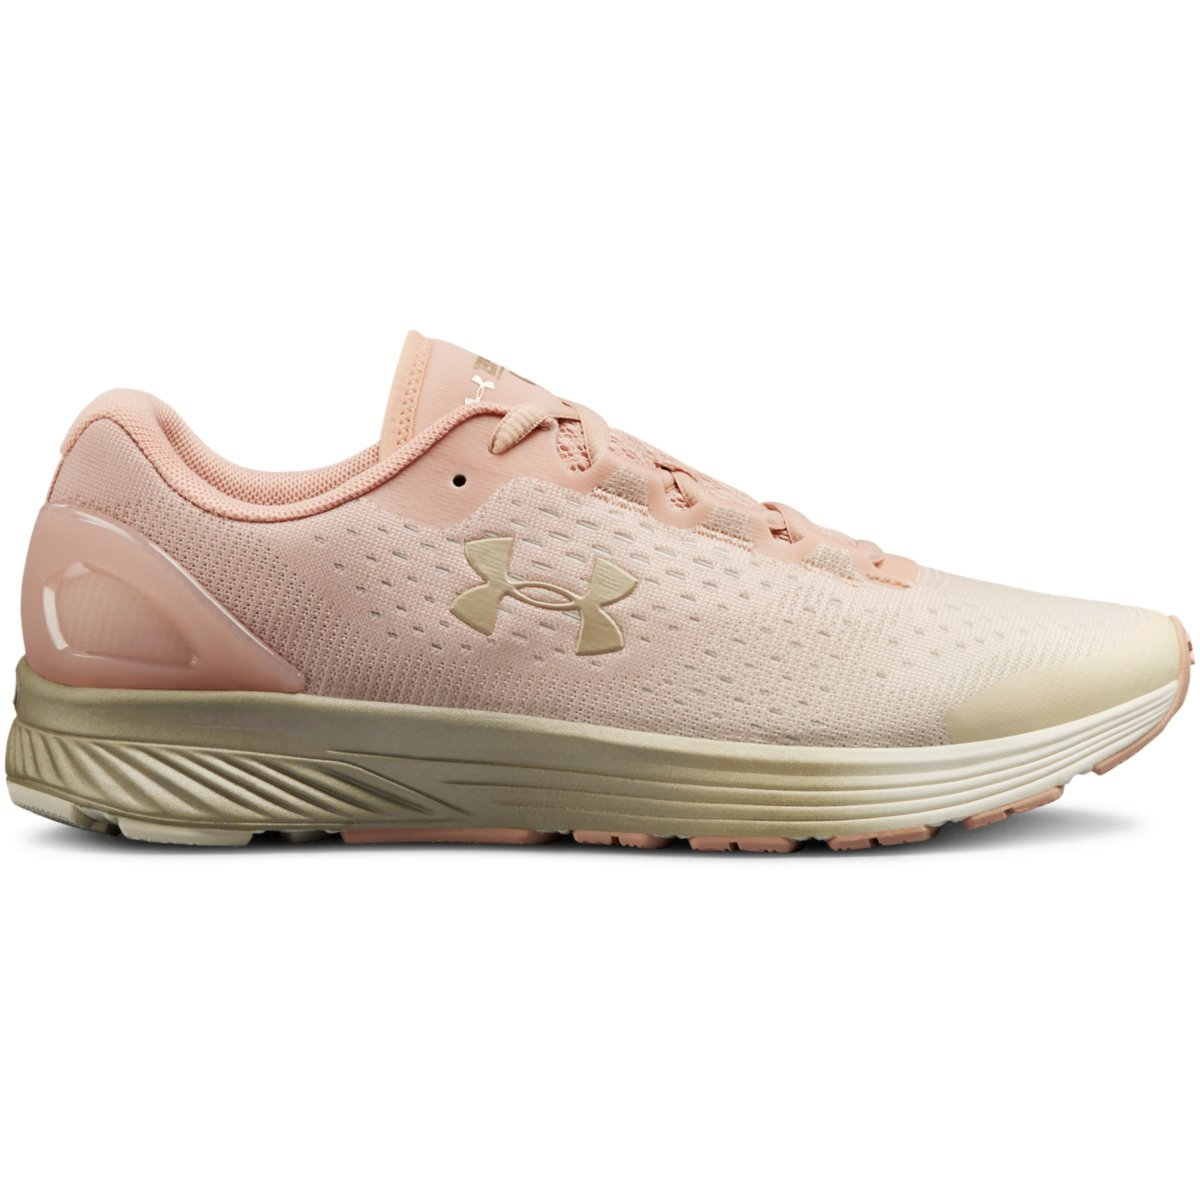 quality design 00fe2 9affb UNDER ARMOUR Women's UA Charged Bandit 4 Running Shoes